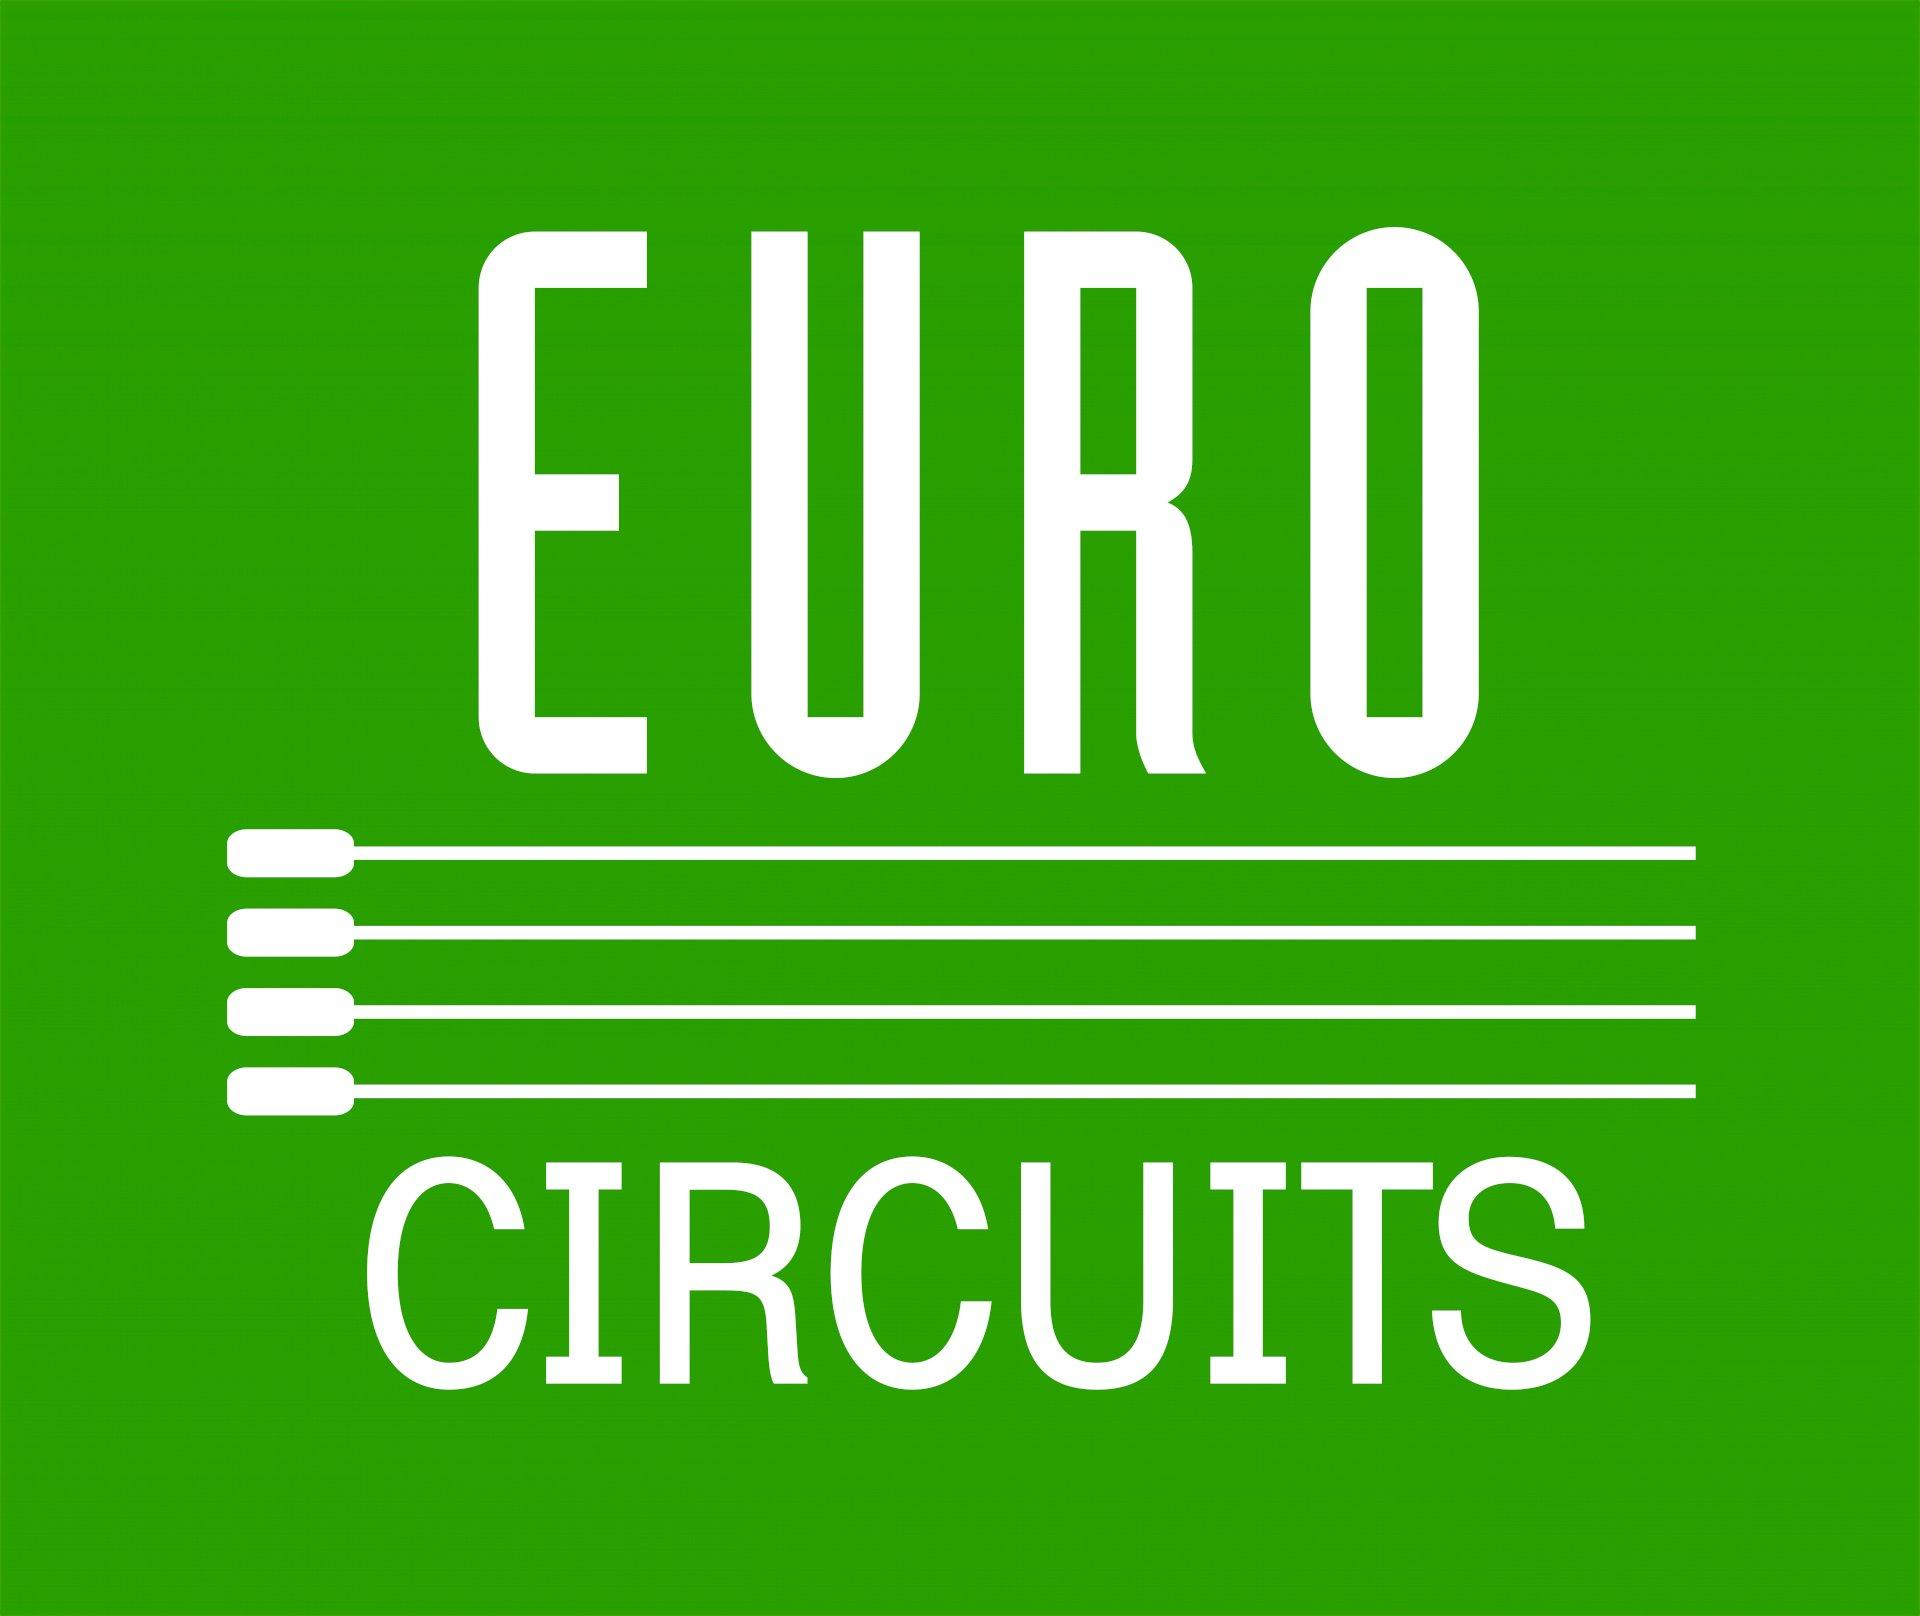 Eurocircuits wishes you a welcome back!